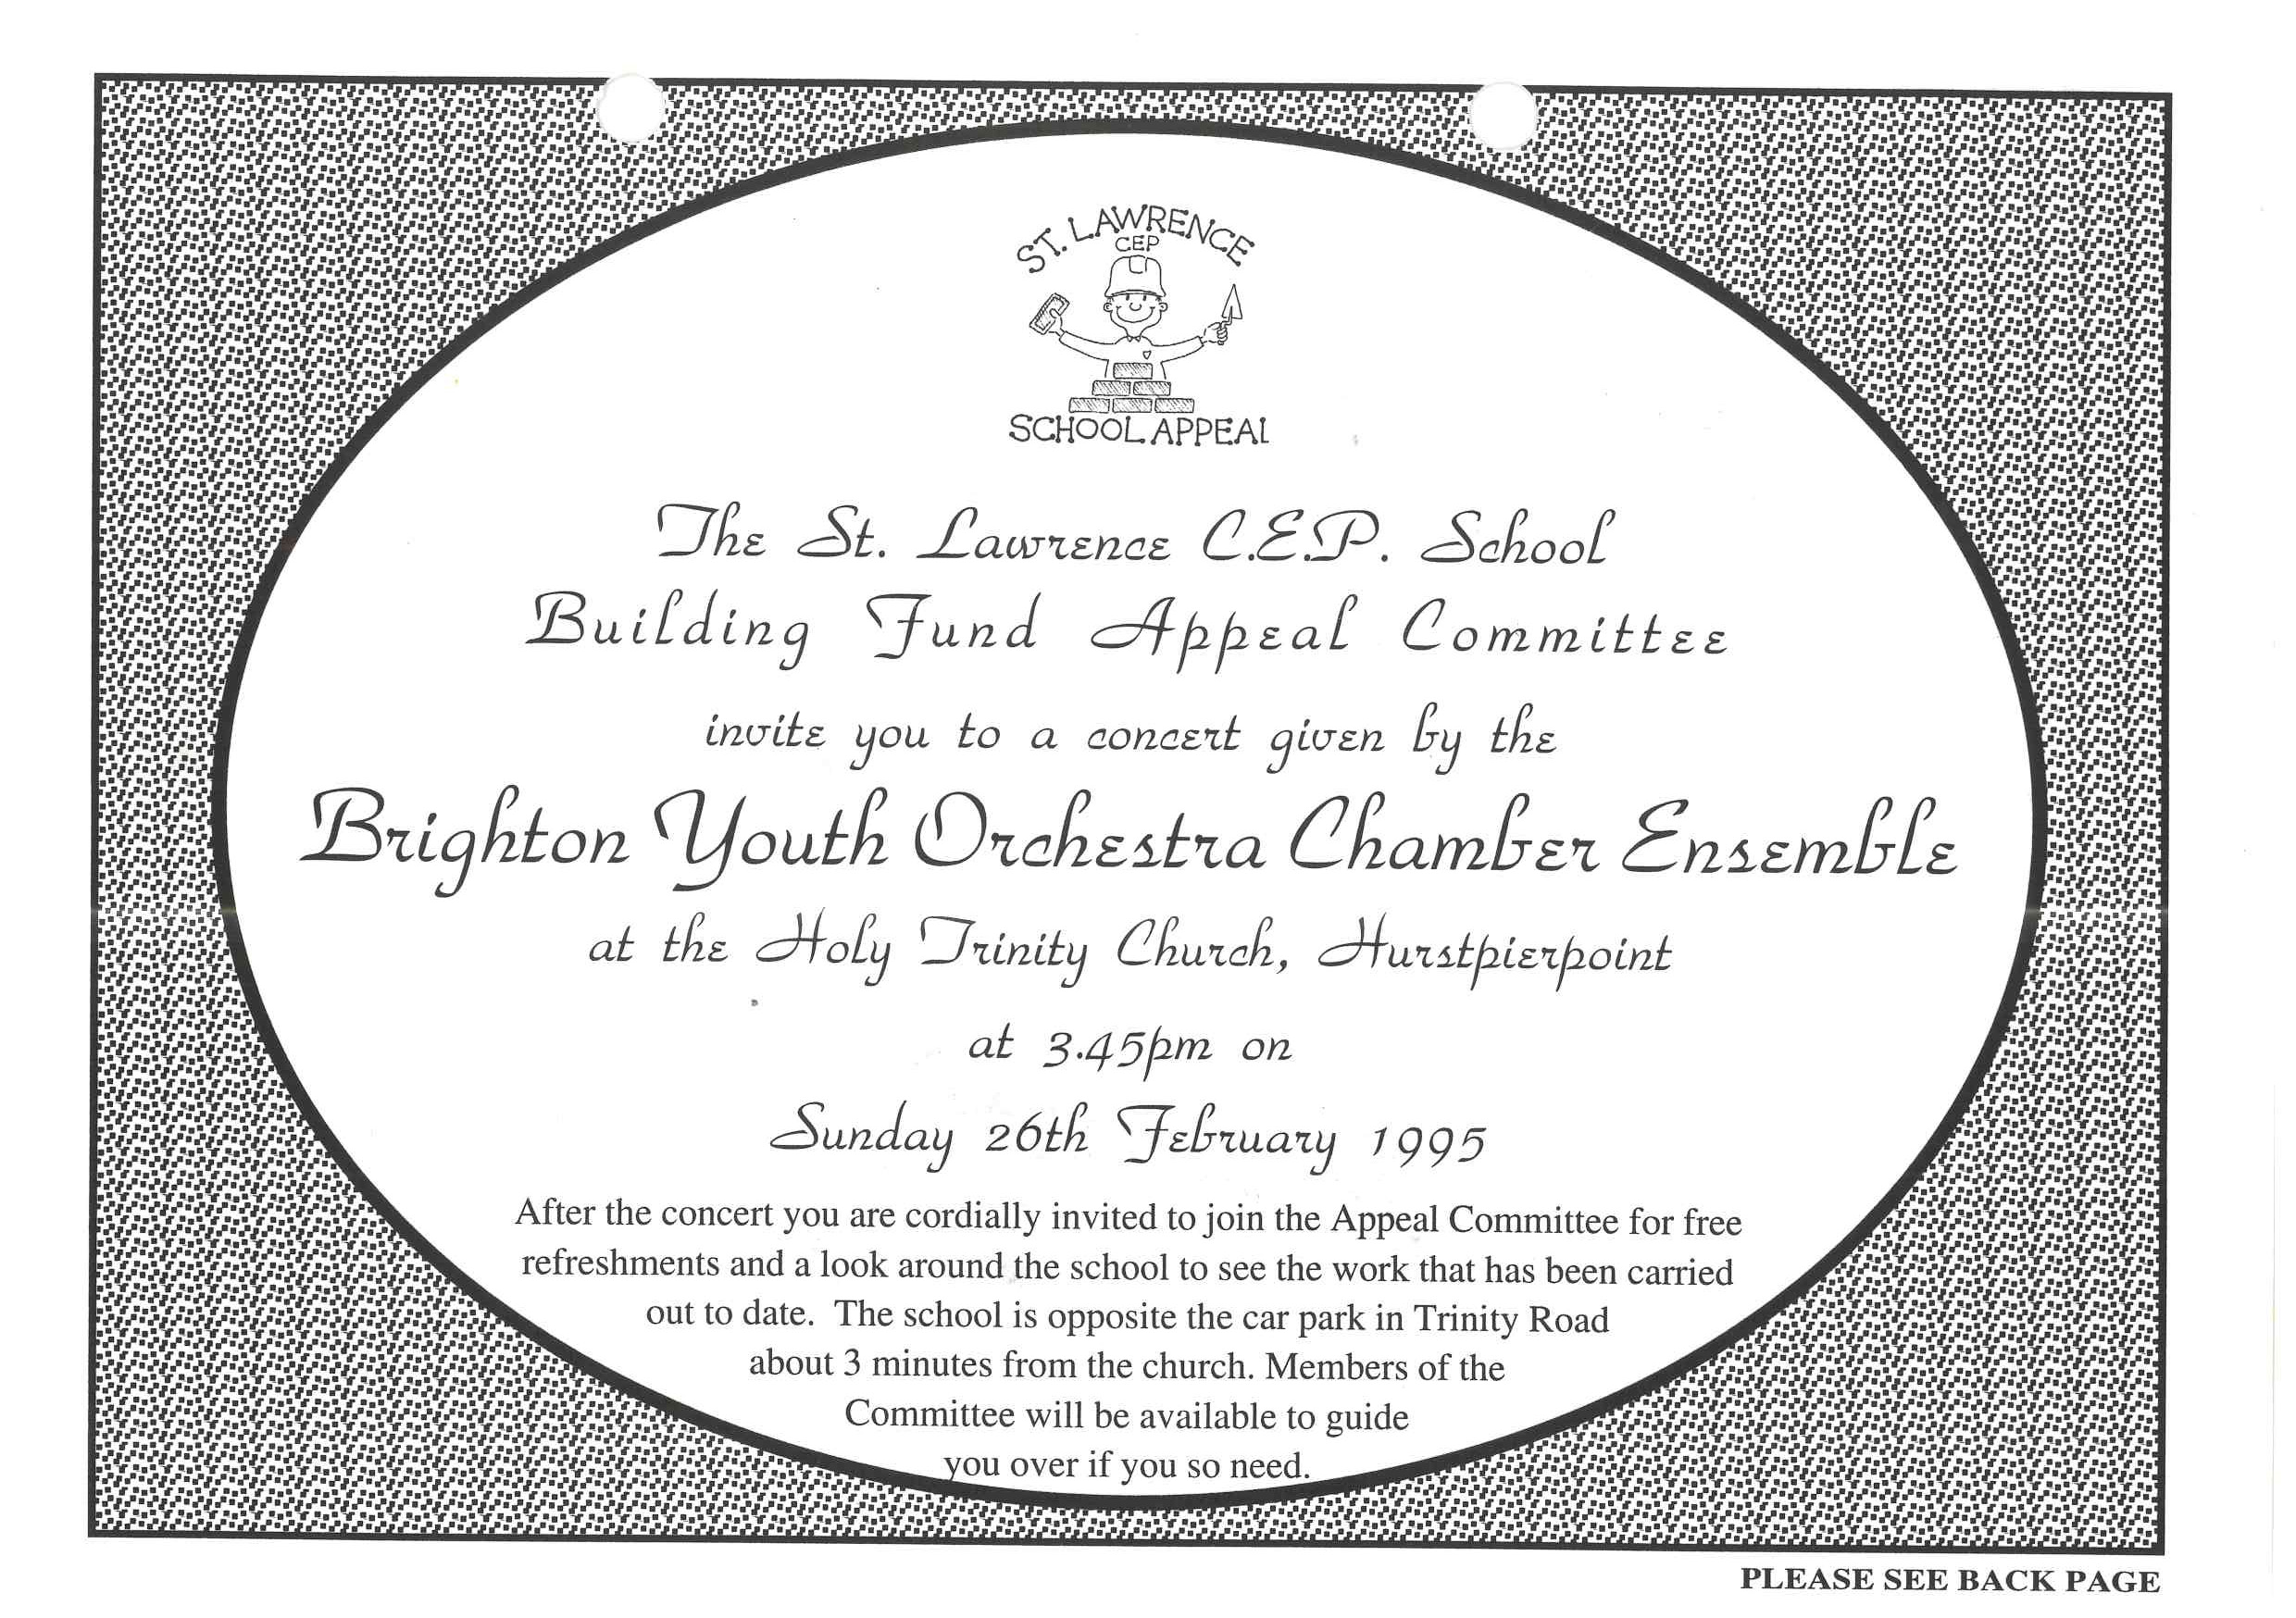 00281-BYO Chamber Ensemble Hurstpierpoint, 26th February 1995.jpg